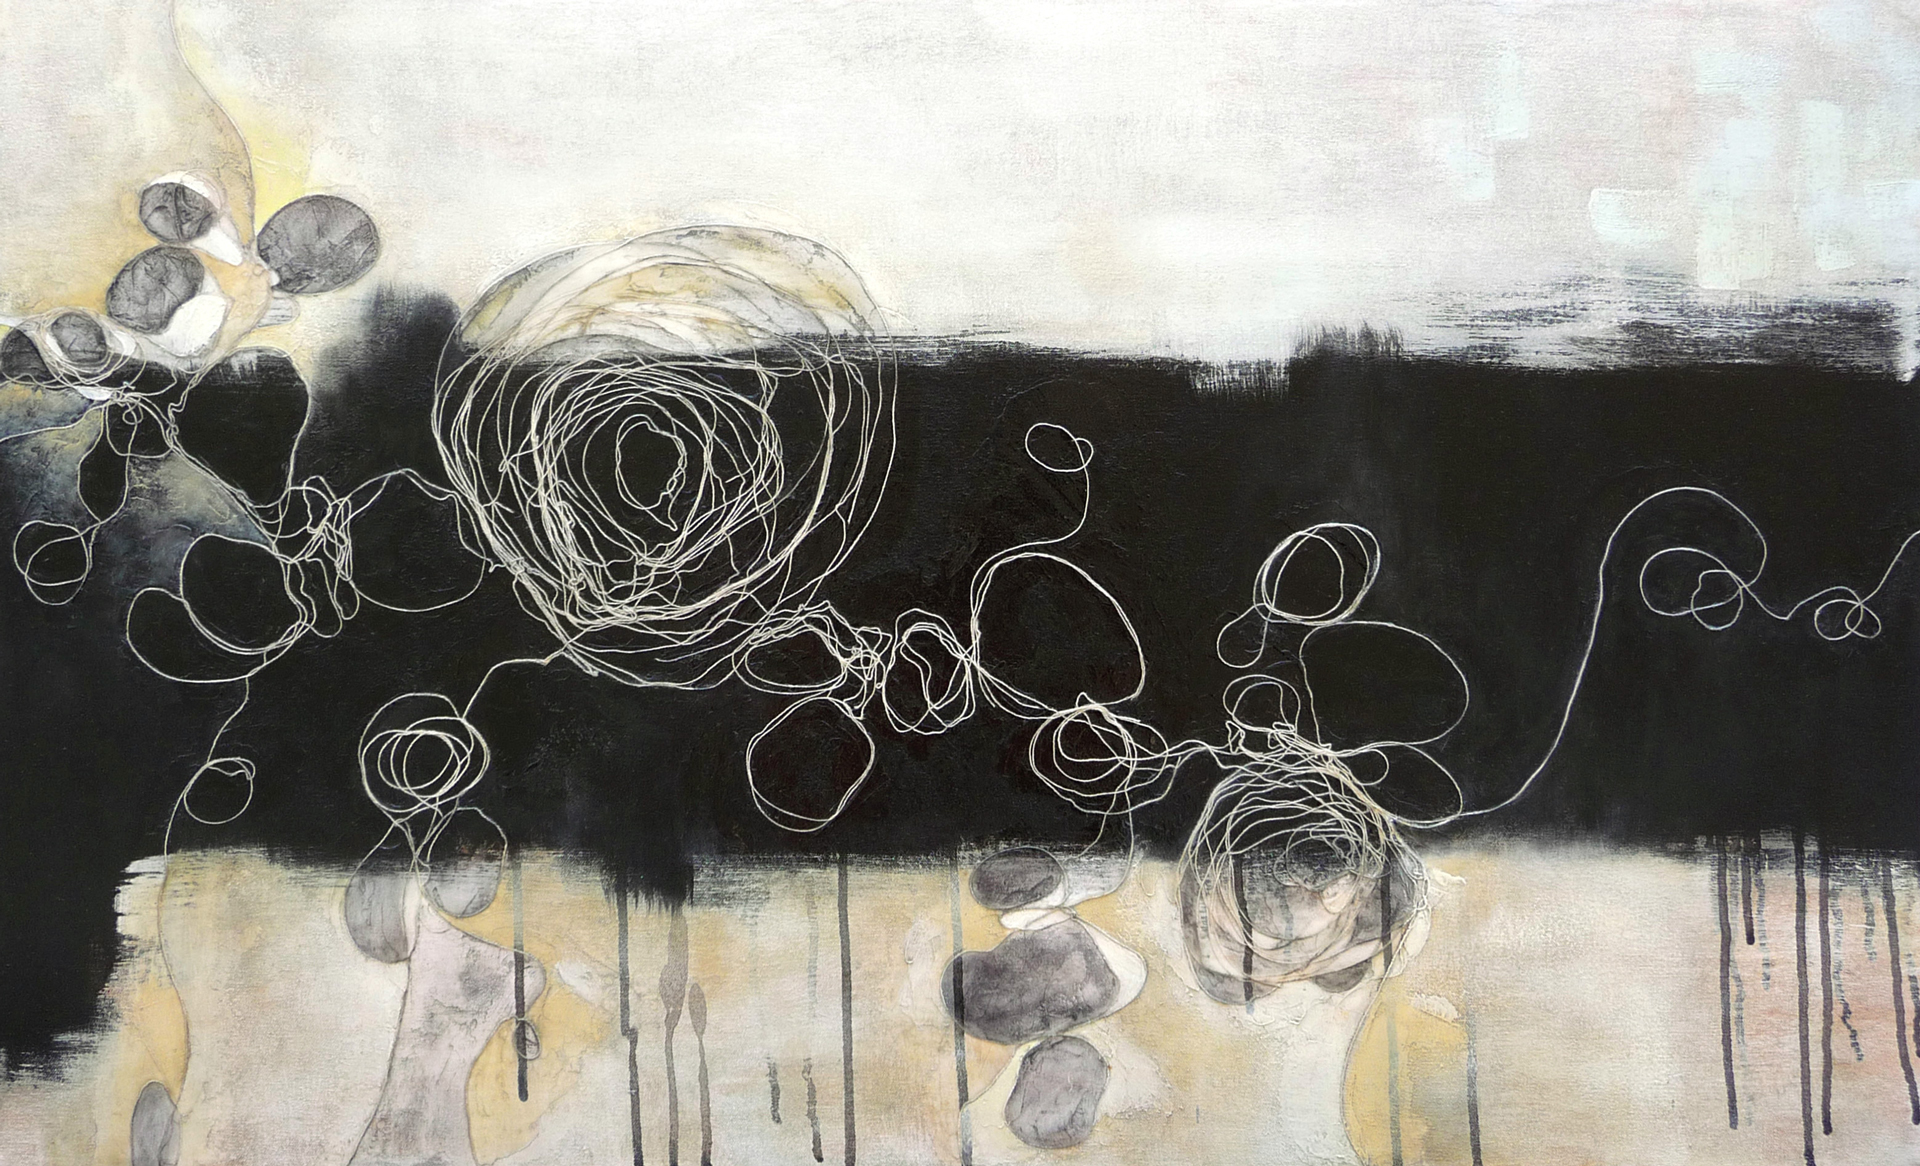 Black Stripe, 2010. Oil, acrylic and collage on canvas. 22 x 36 inches (55.9x91.4 cm)